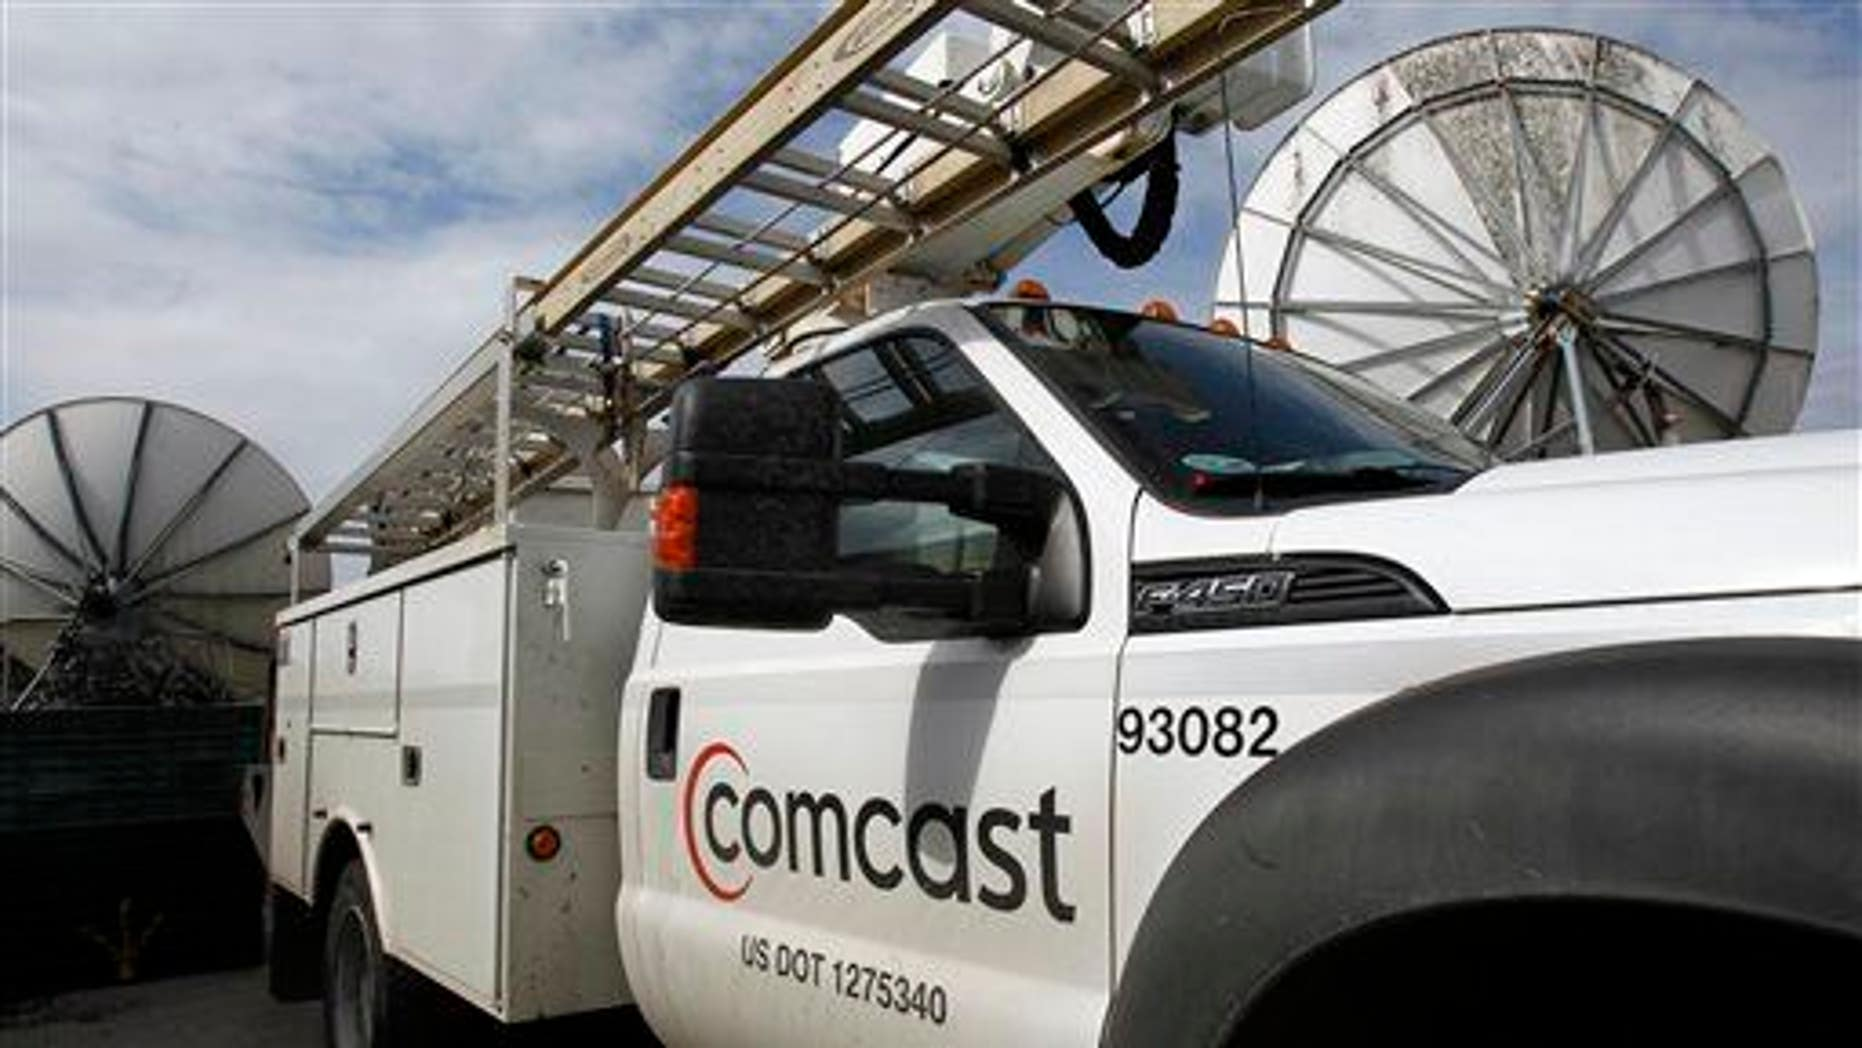 In this Thursday, April 25, 2013, photo, a Comcast truck is parked in Berlin, Vt.